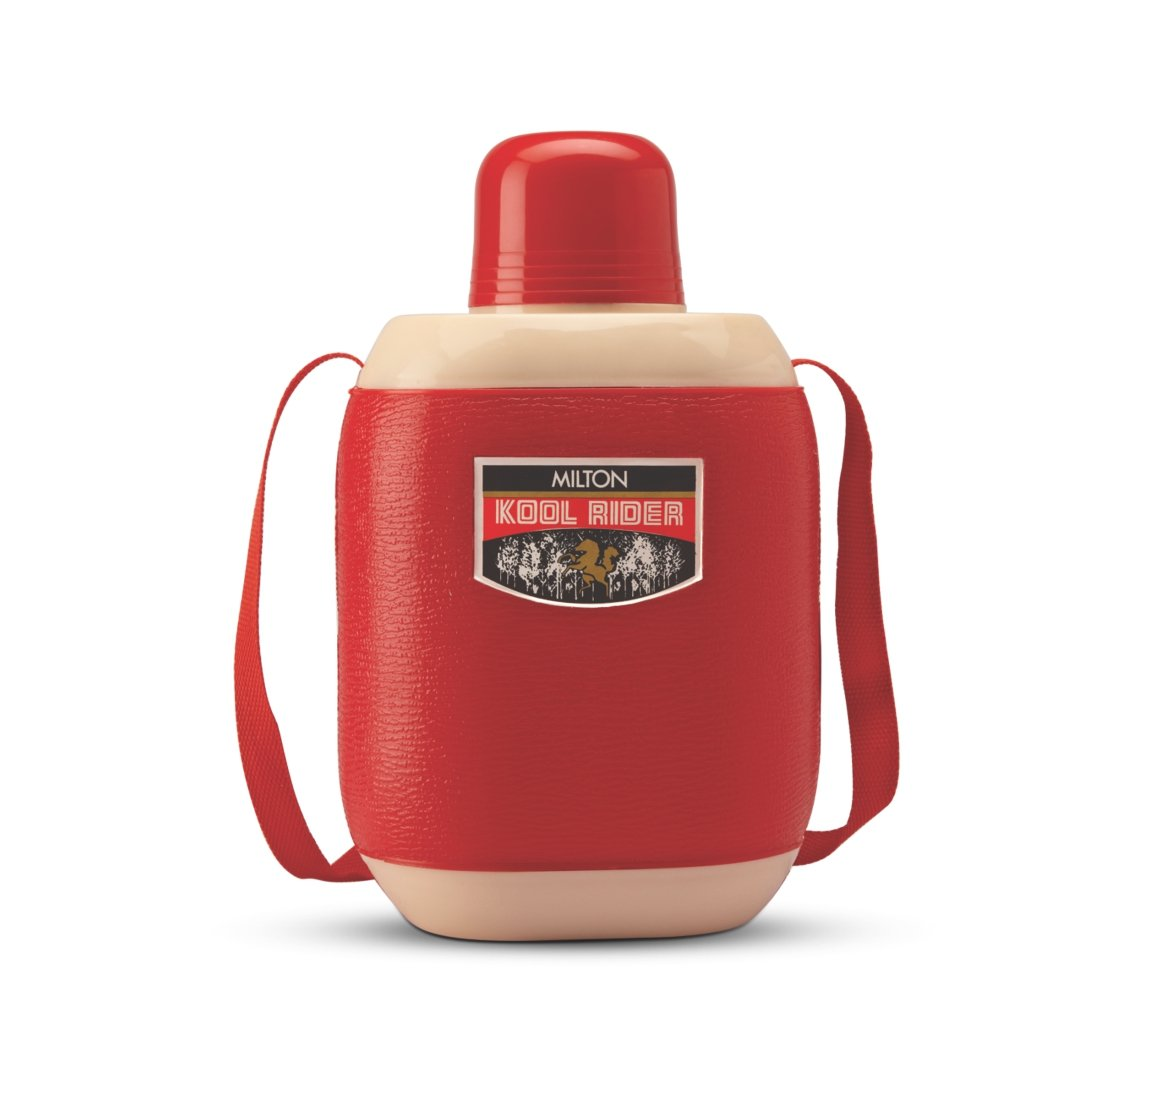 MILTON KOOLRIDER 1L BOTTLE